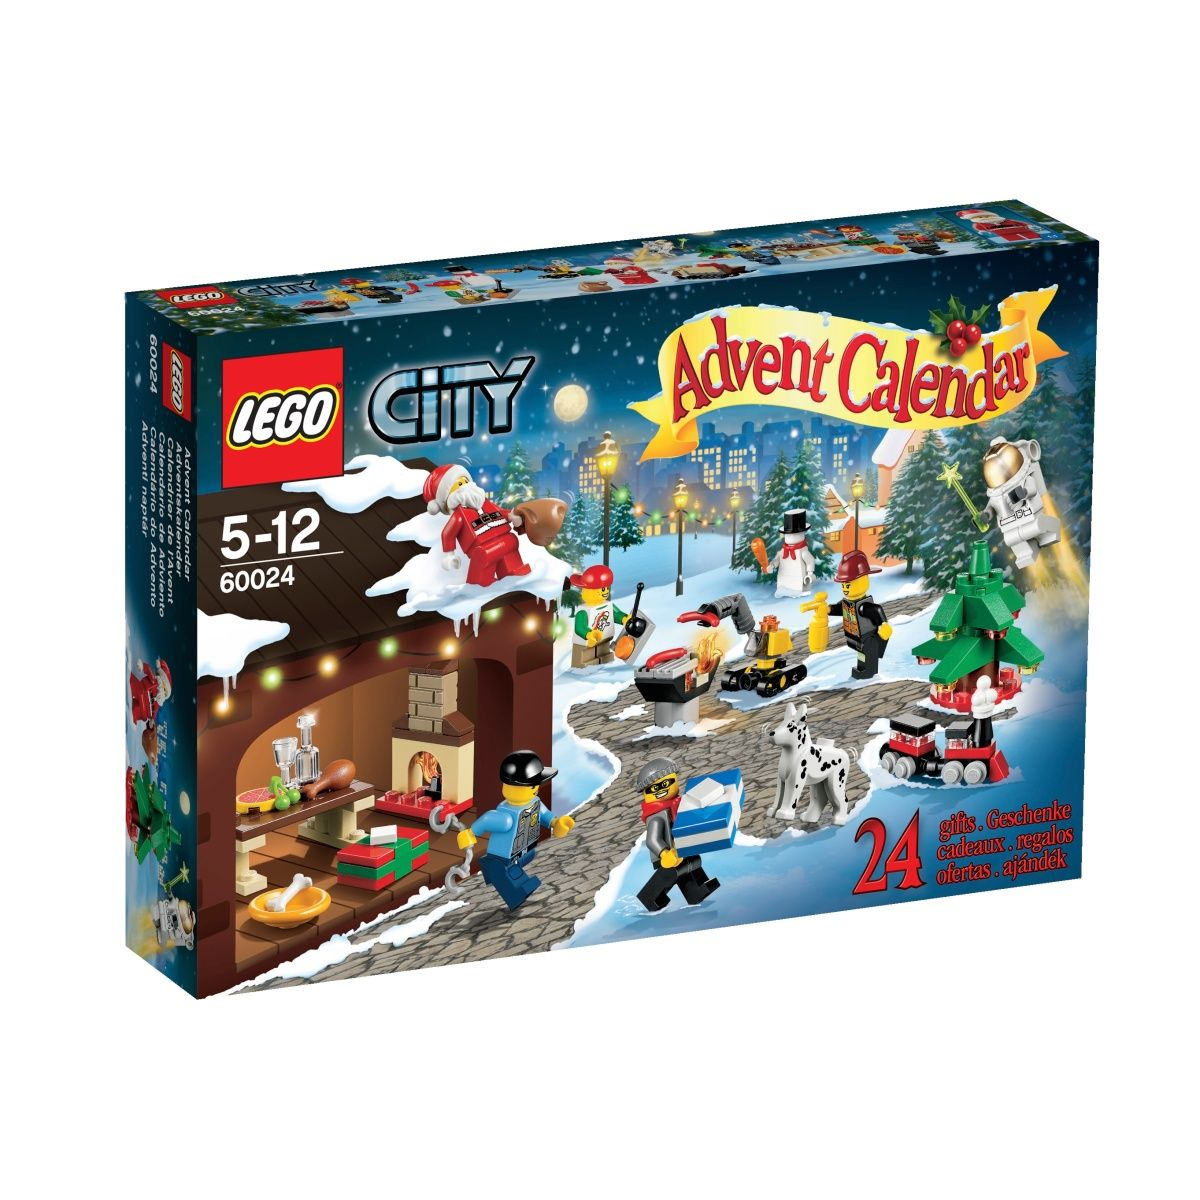 media markt adventi naptár LEGO City Advent Calendar I want one! | Love of stationary and  media markt adventi naptár